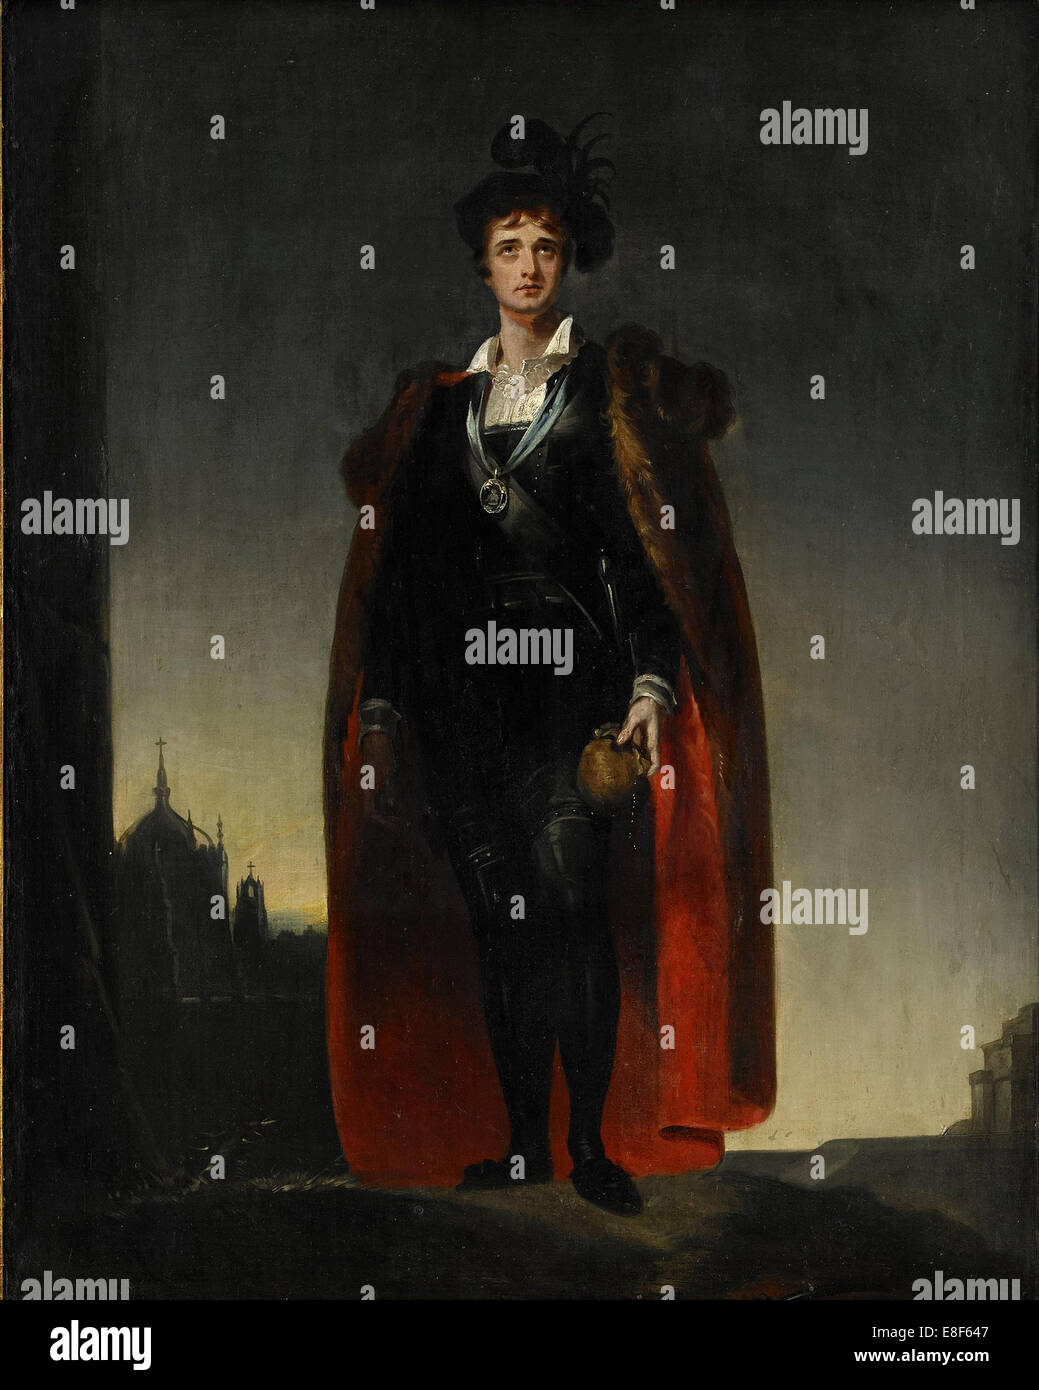 John Philip Kemble as Hamlet. Artist: Lawrence, Sir Thomas (1769-1830) - Stock Image